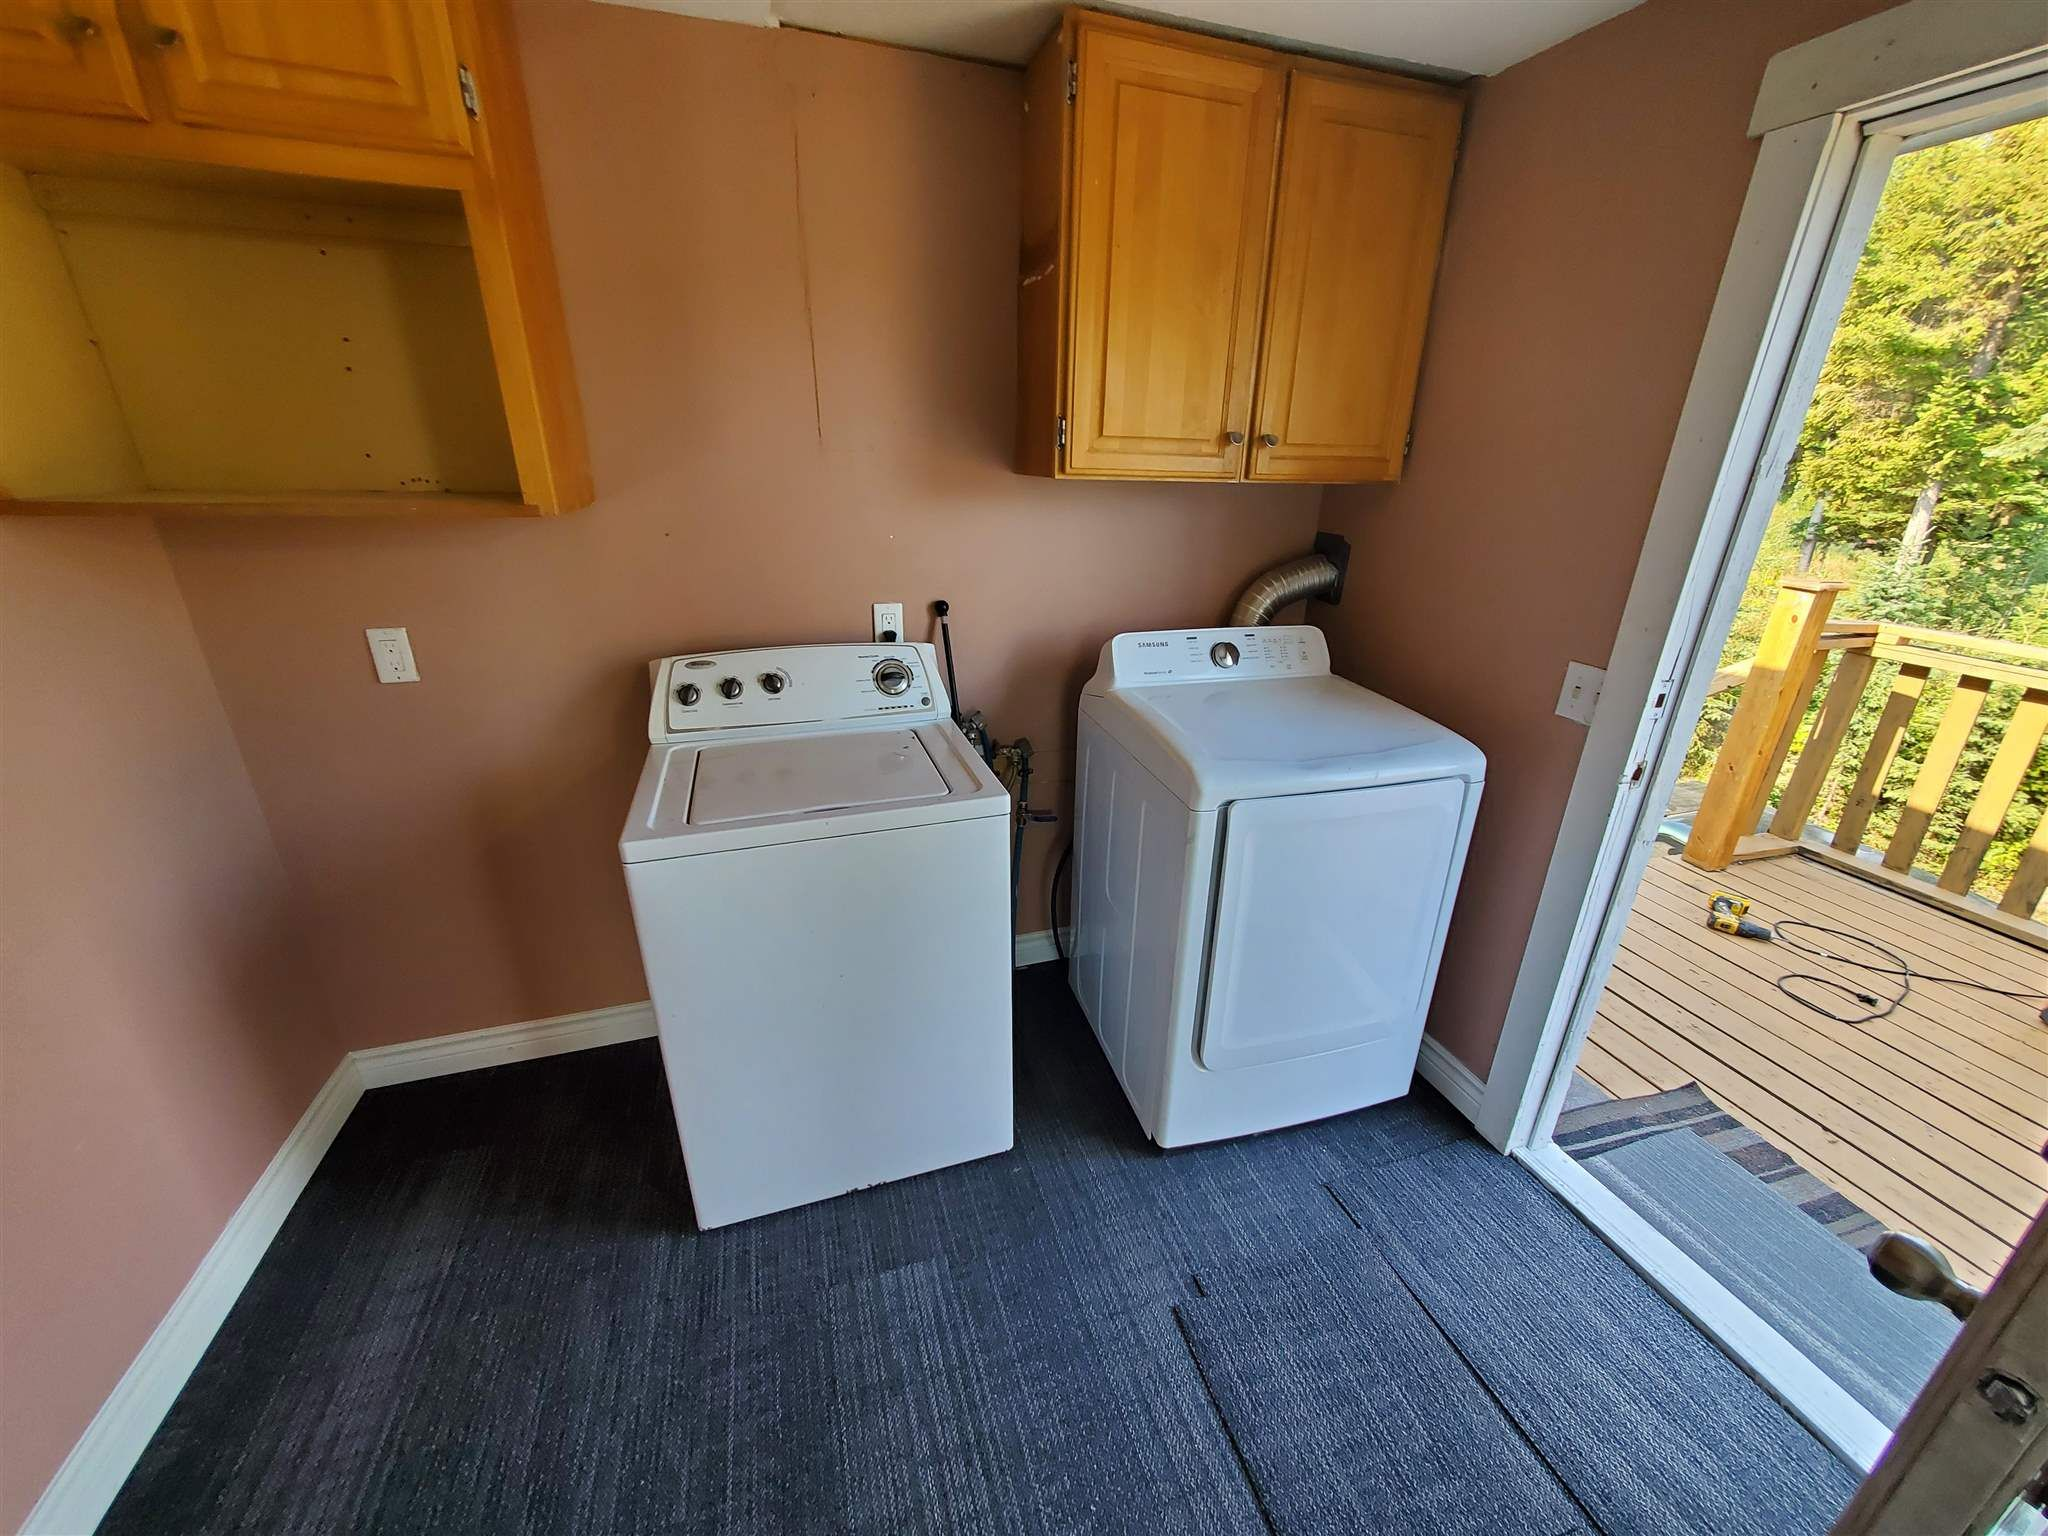 Photo 8: Photos: 2507 NORWOOD Road in Quesnel: Bouchie Lake Manufactured Home for sale (Quesnel (Zone 28))  : MLS®# R2606130